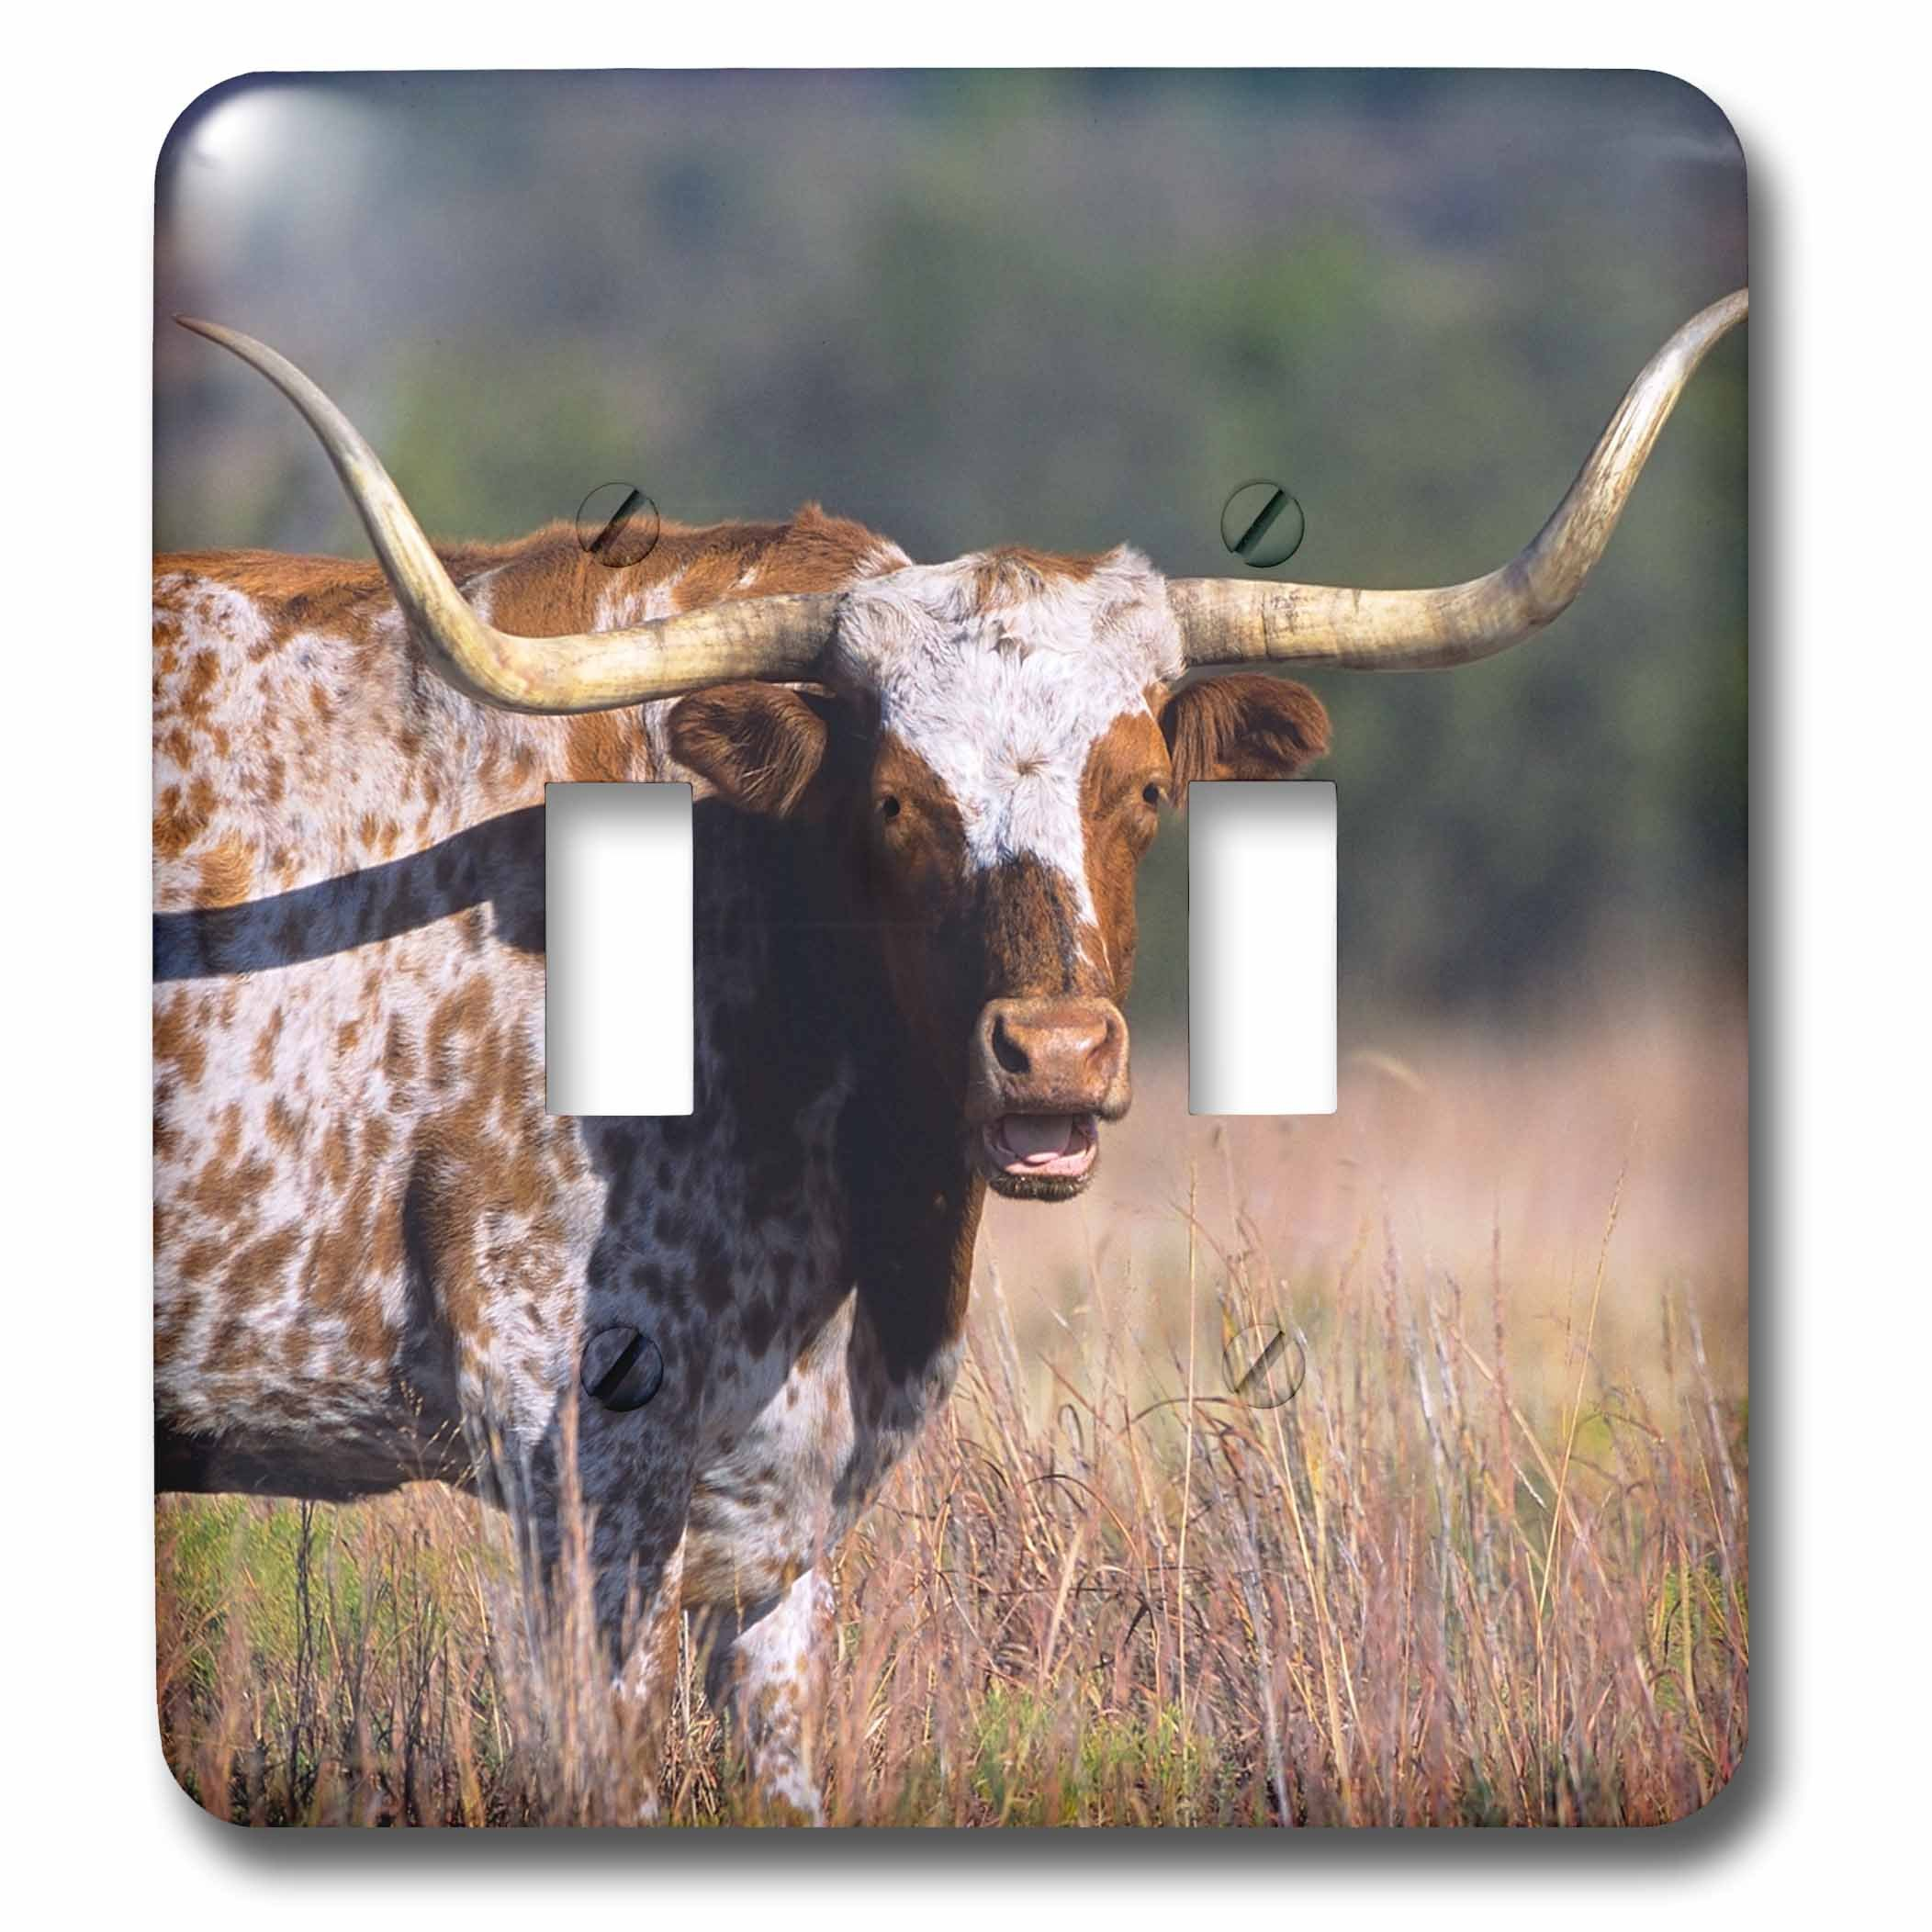 3dRose LSP_260687_2 Texas Longhorn Cattle, Wyoming, USA Toggle Switch, by 3dRose